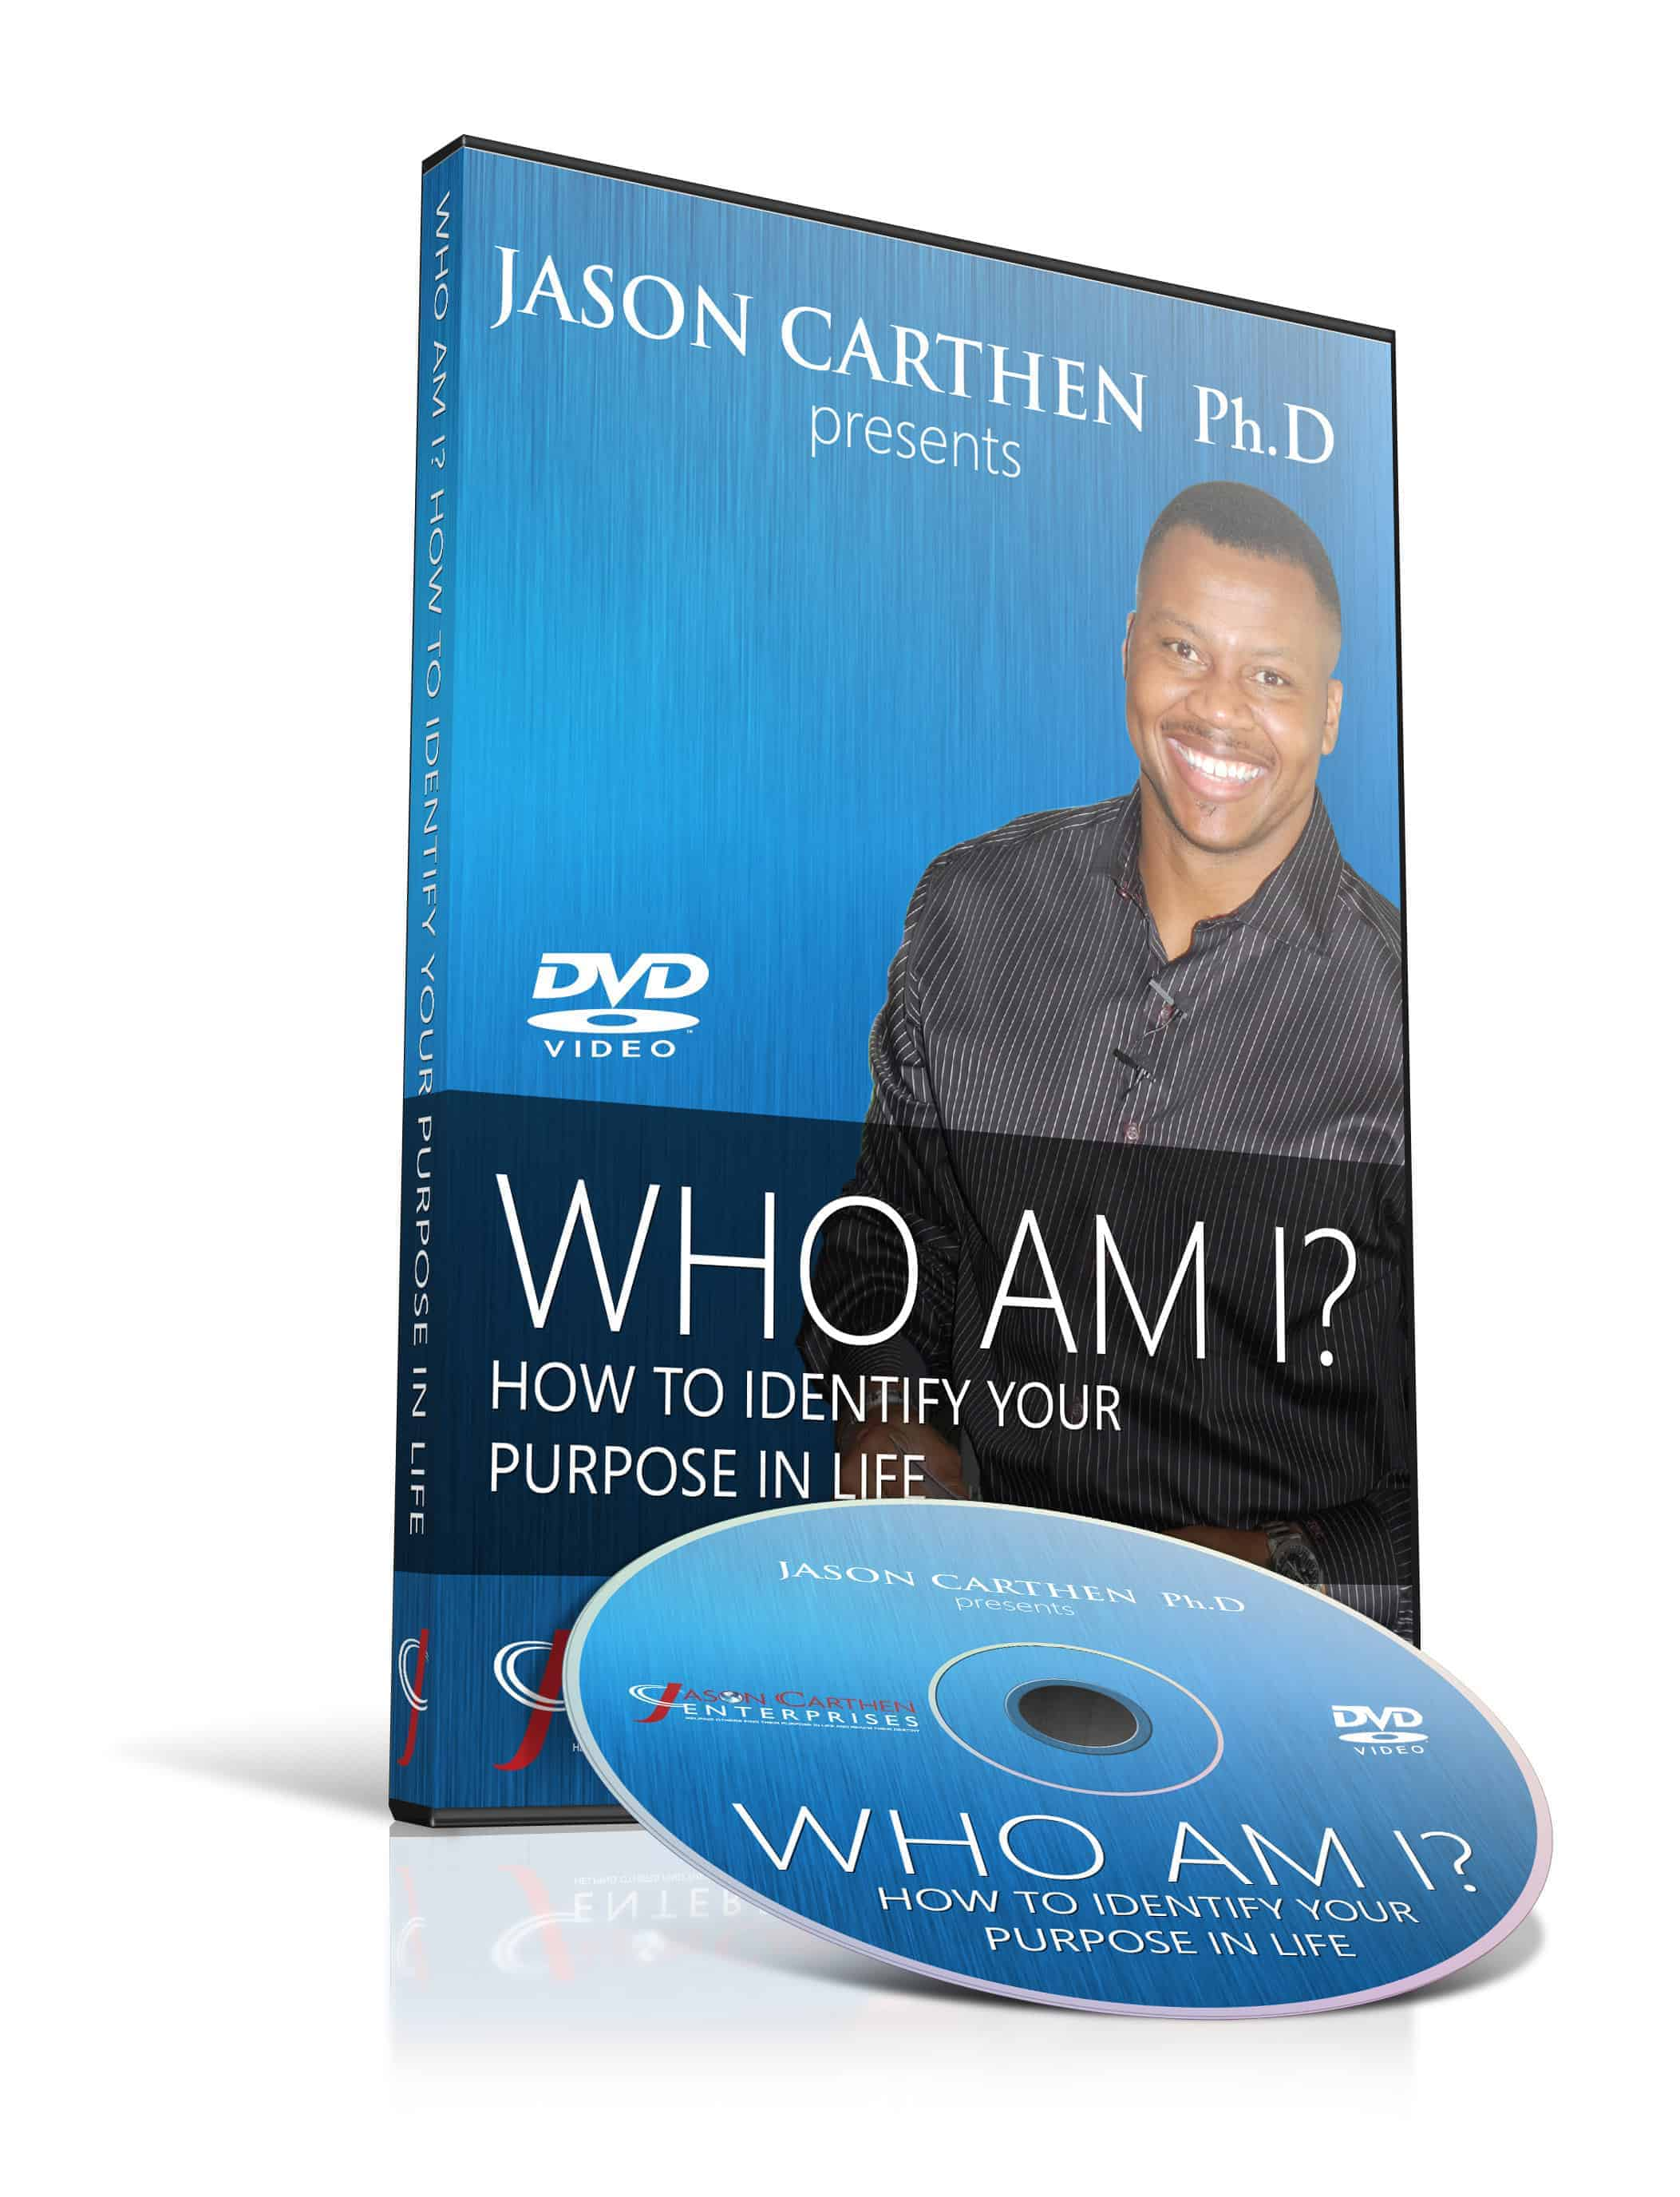 Dr. Jason Carthen: Who am I? How to identify Your Purpose in Life. DVD